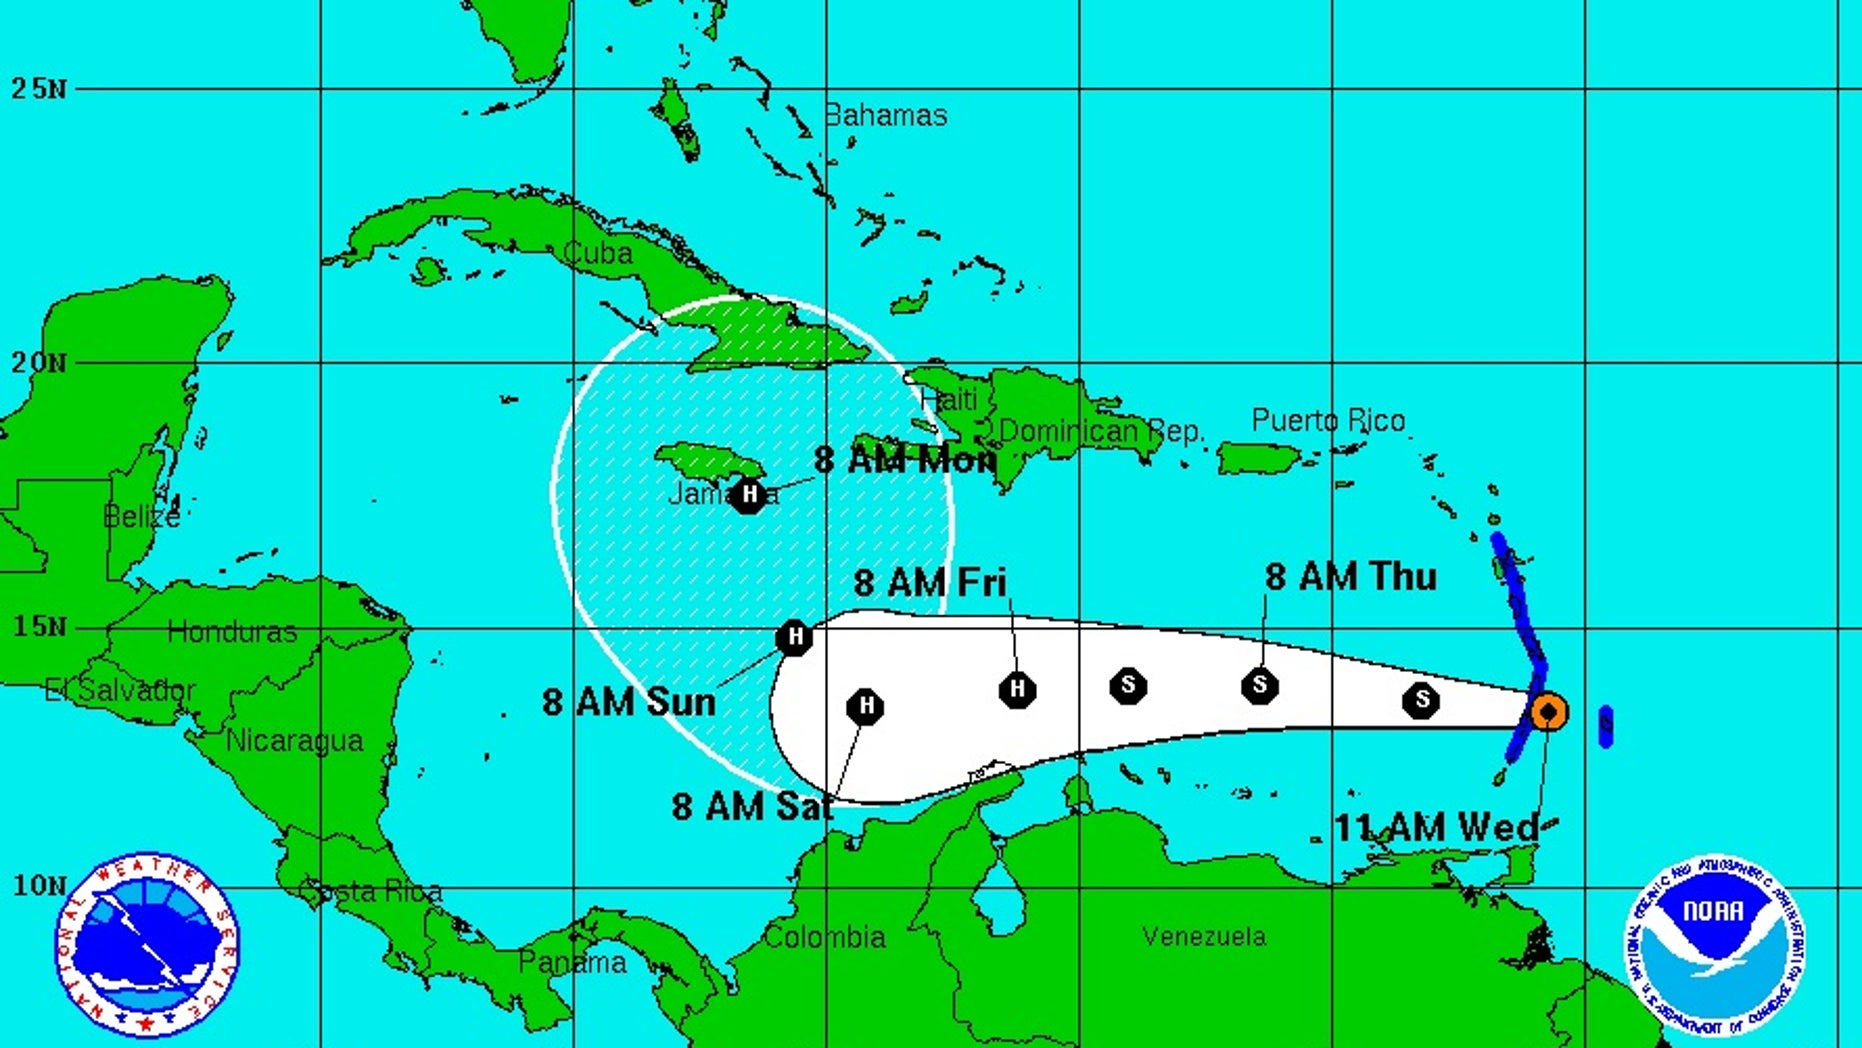 Forecast track for Tropical Storm Matthew.